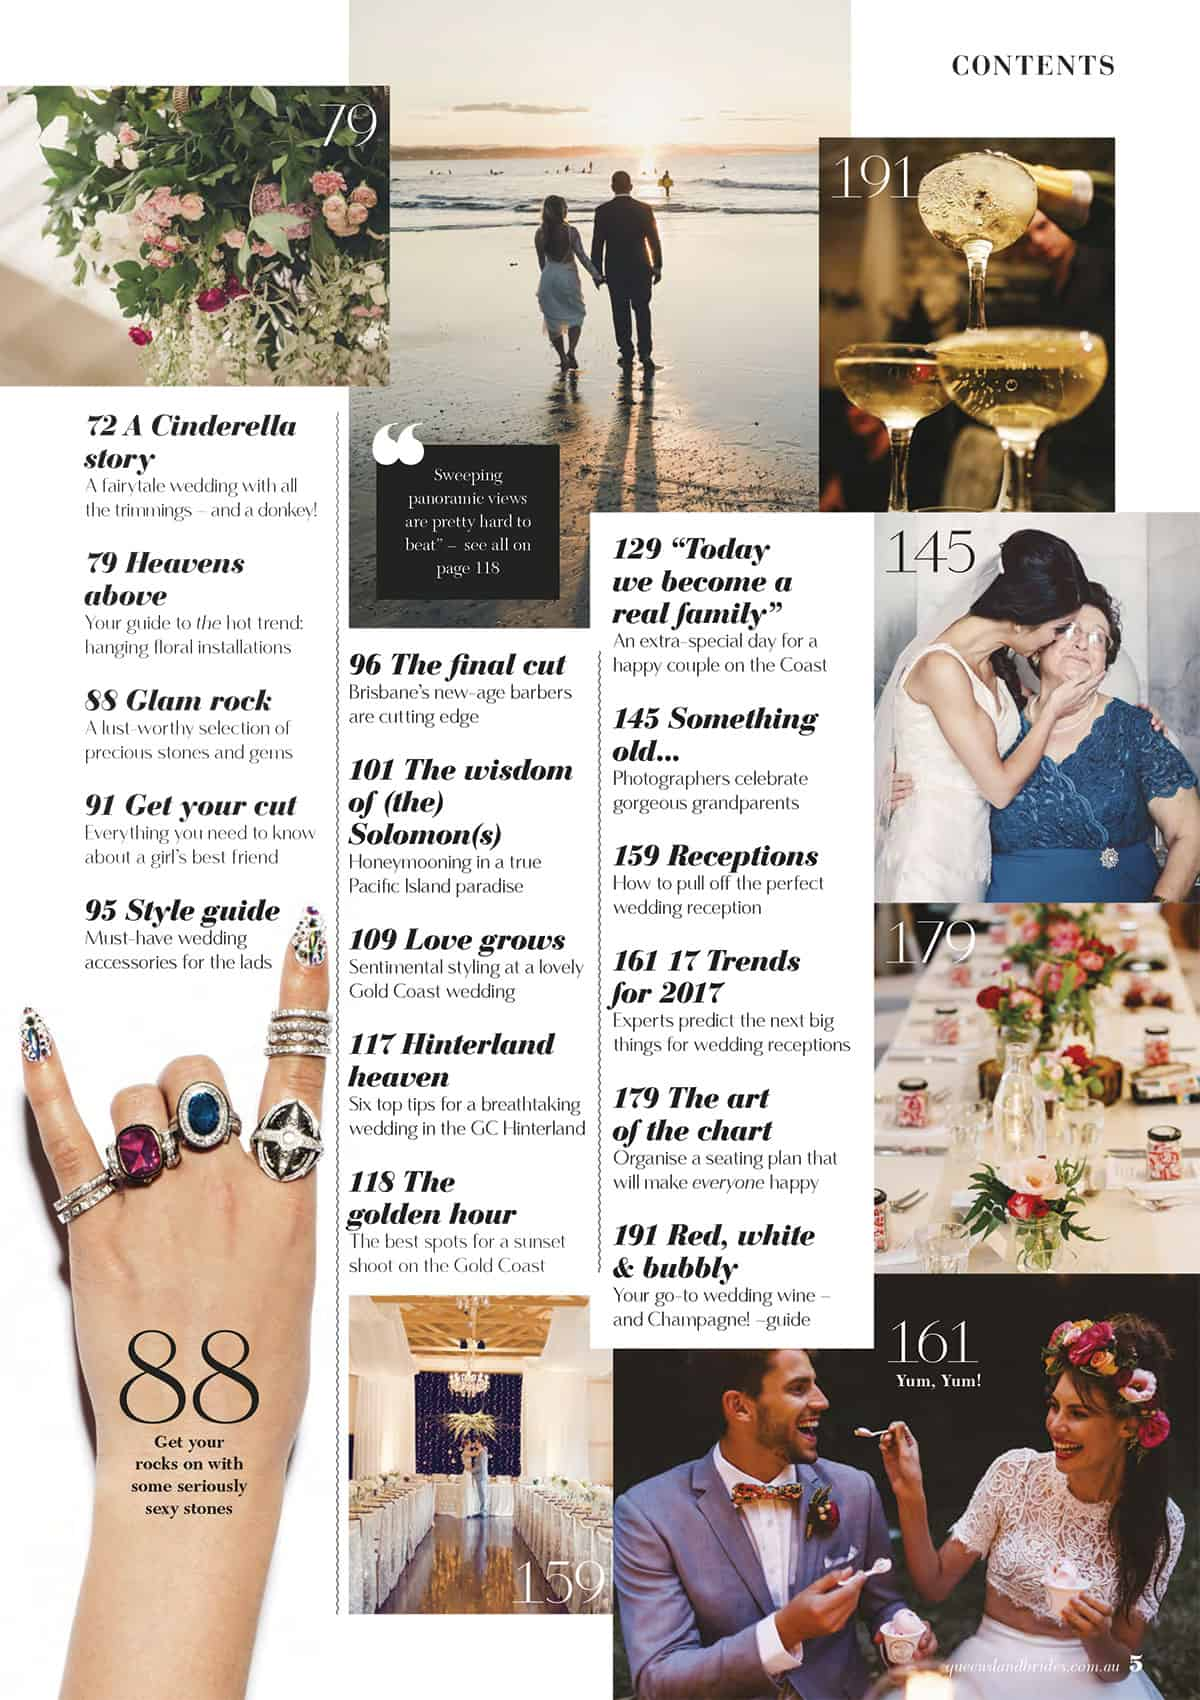 Queensland Brides Summer 16-17 contents